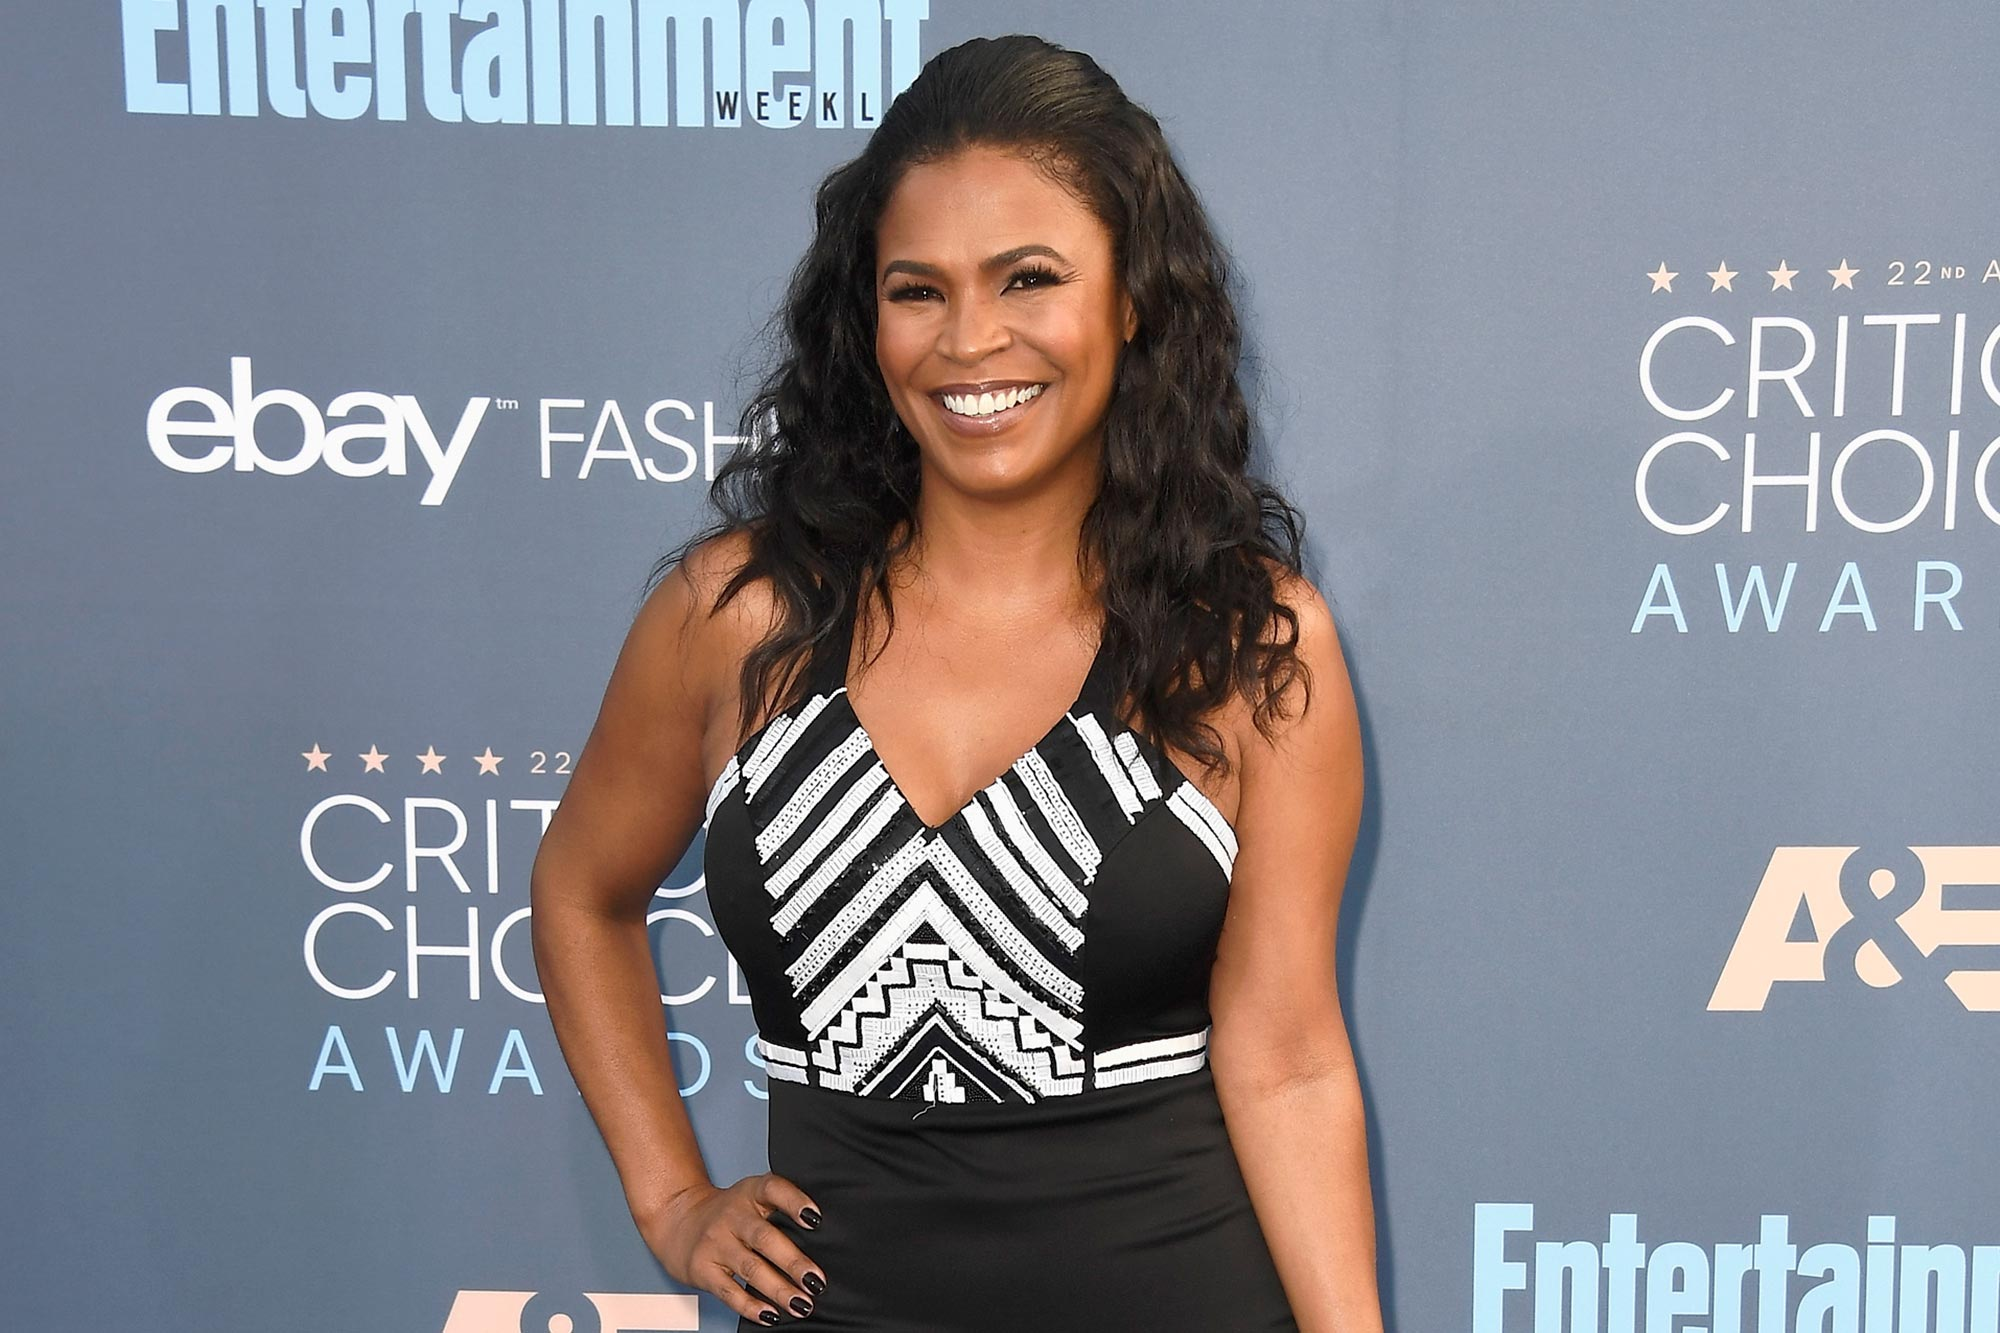 Variety is exclusively reporting that Nia Long is the latest name to join the cast of Netflix's romantic comedy Plus/Minus.